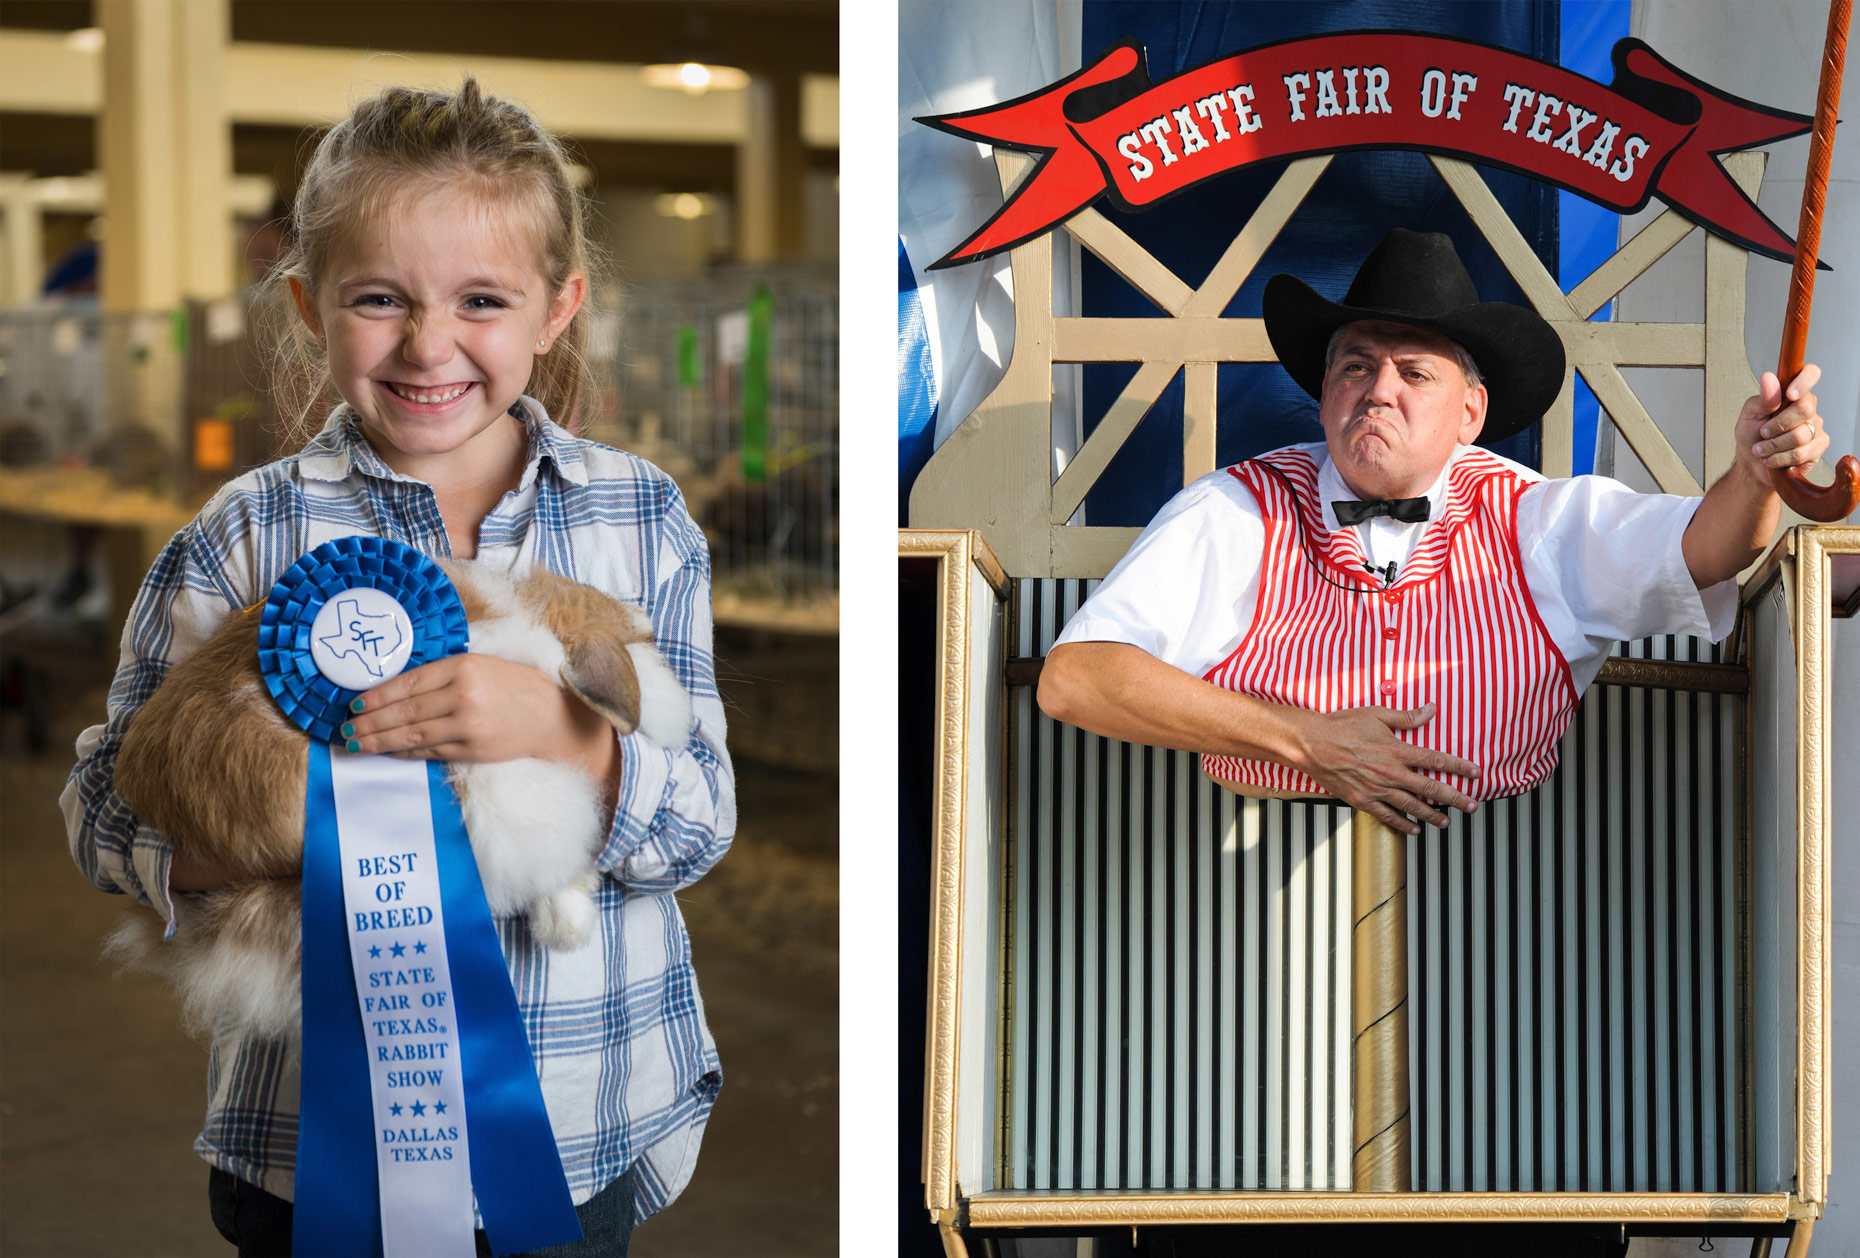 Fun at The State Fair of Texas. Photography by Kevin Brown